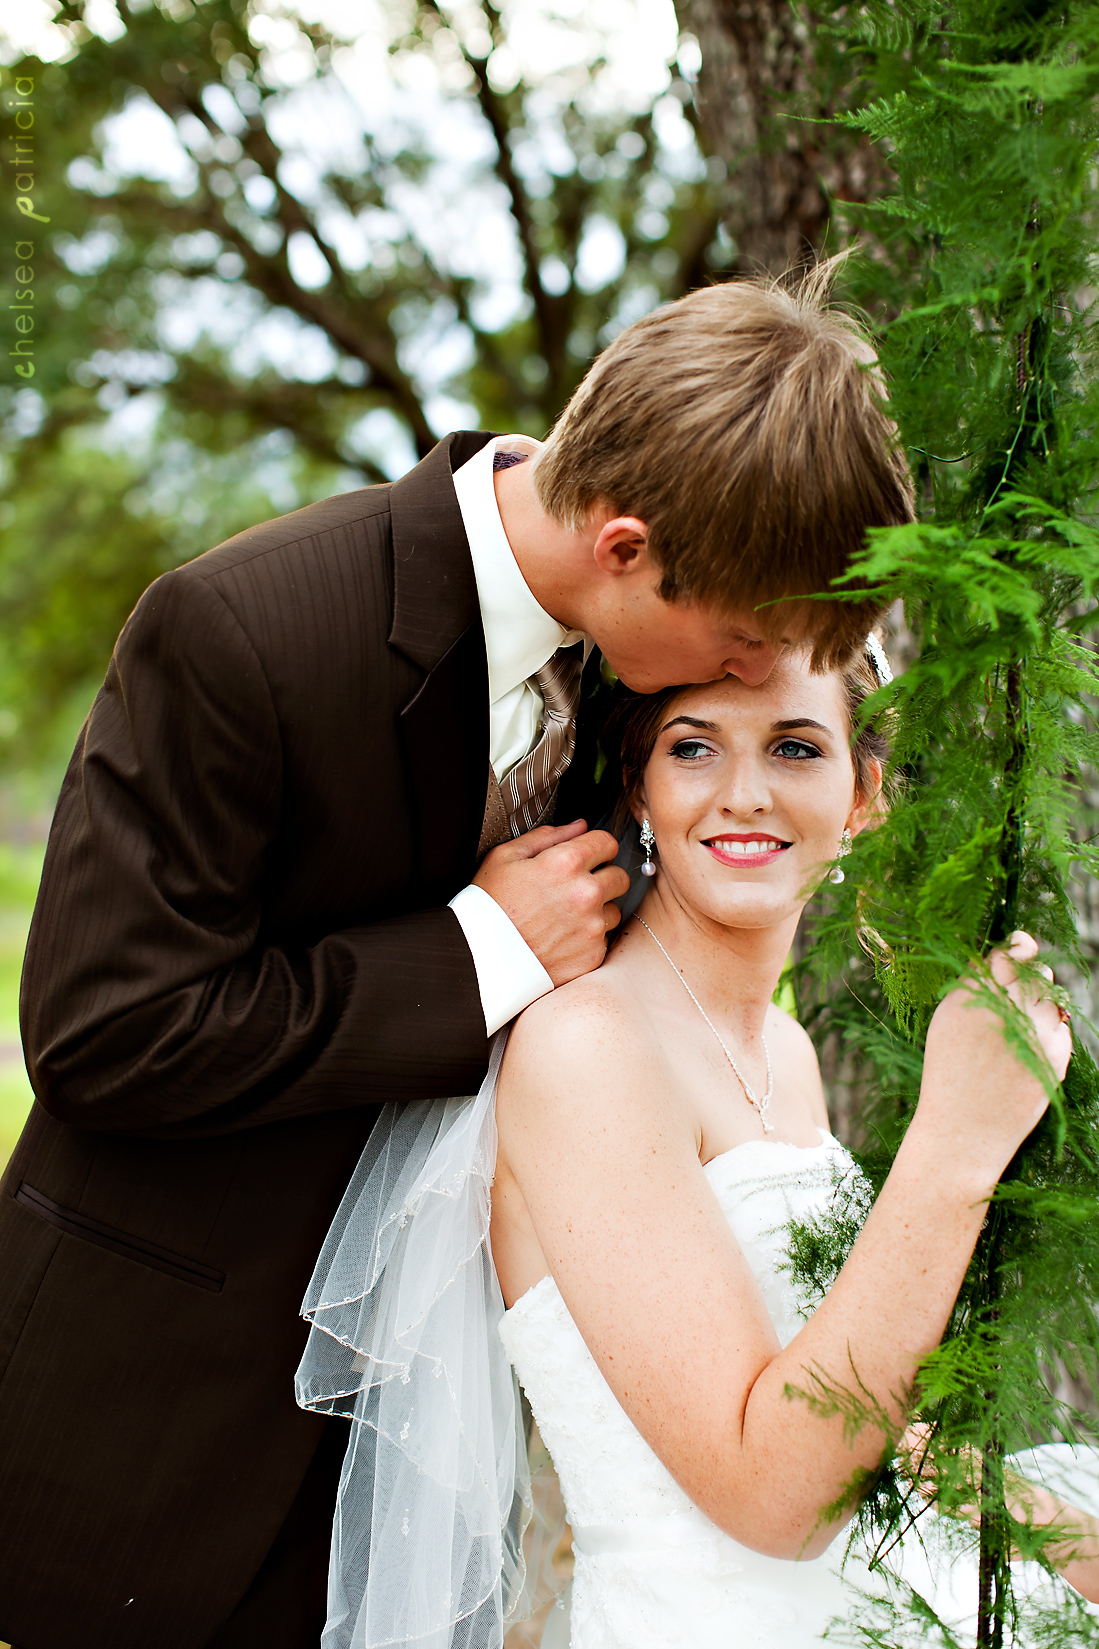 051411-mobile-alabama-wedding-photography-country-rope-swings-wedding.jpg